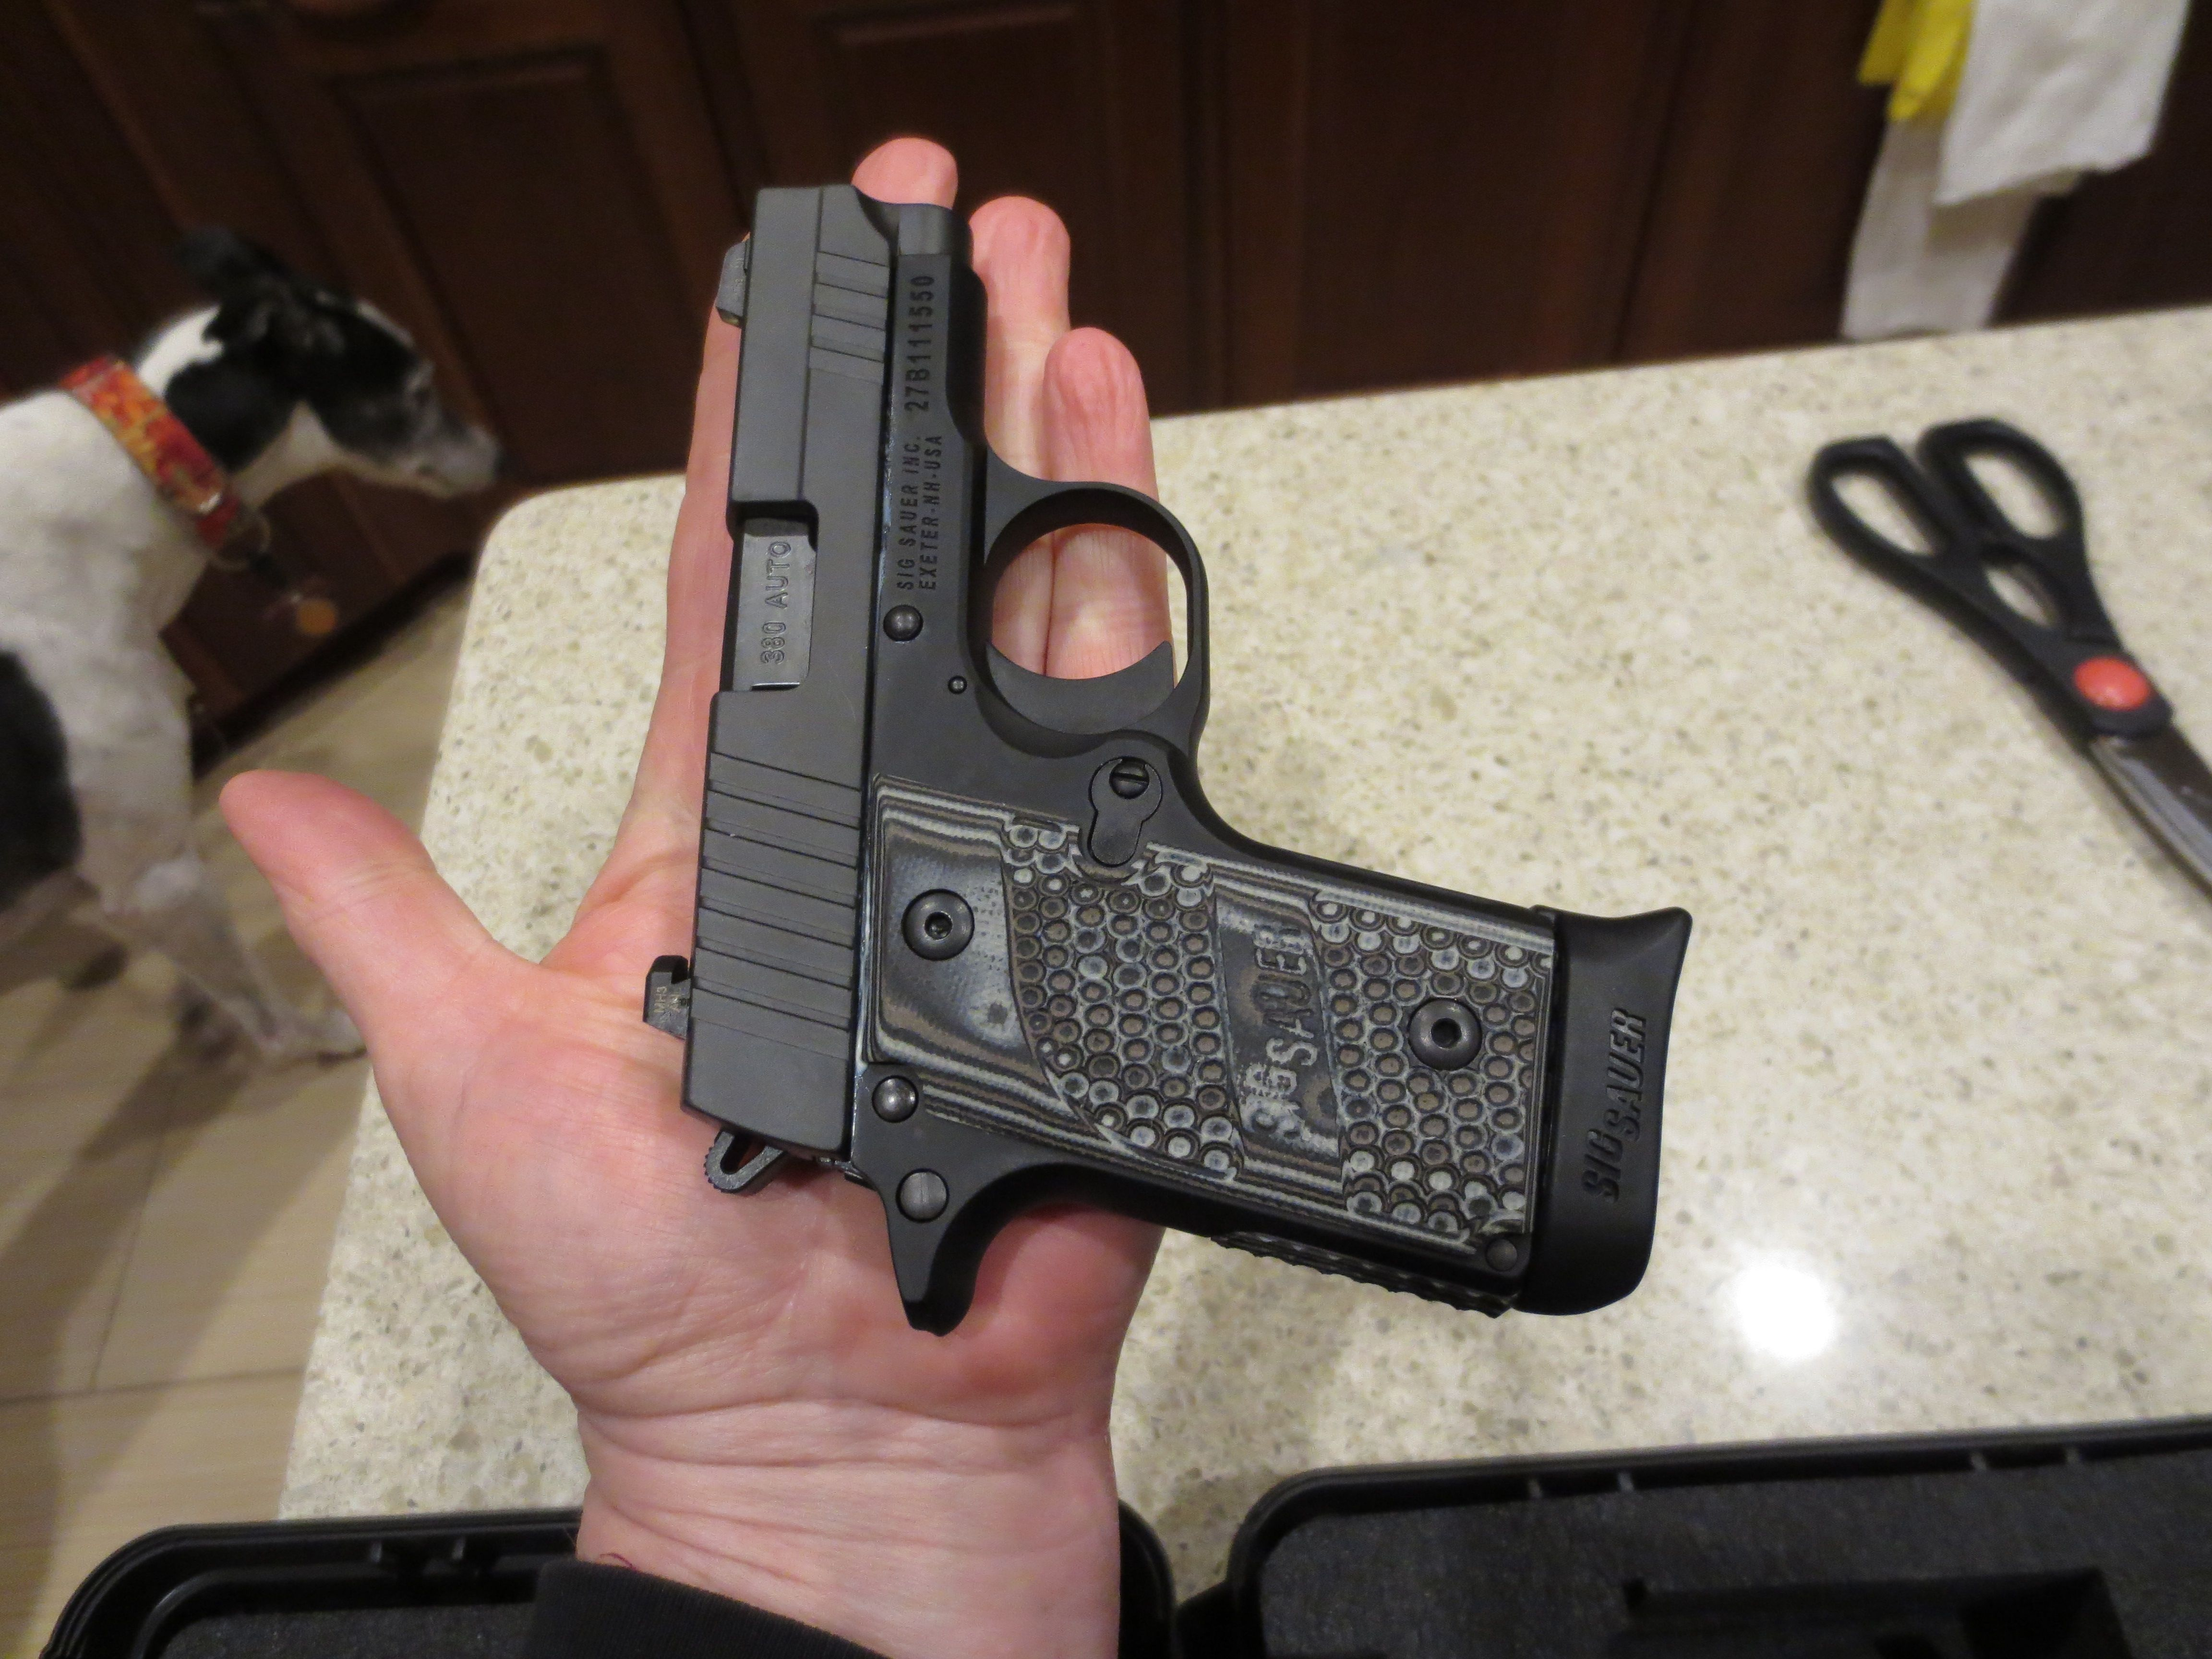 small resolution of sig sauer p238 380 pistol with an extended magazine so tiny my hand almost hides it i love this little gun oh and those grips